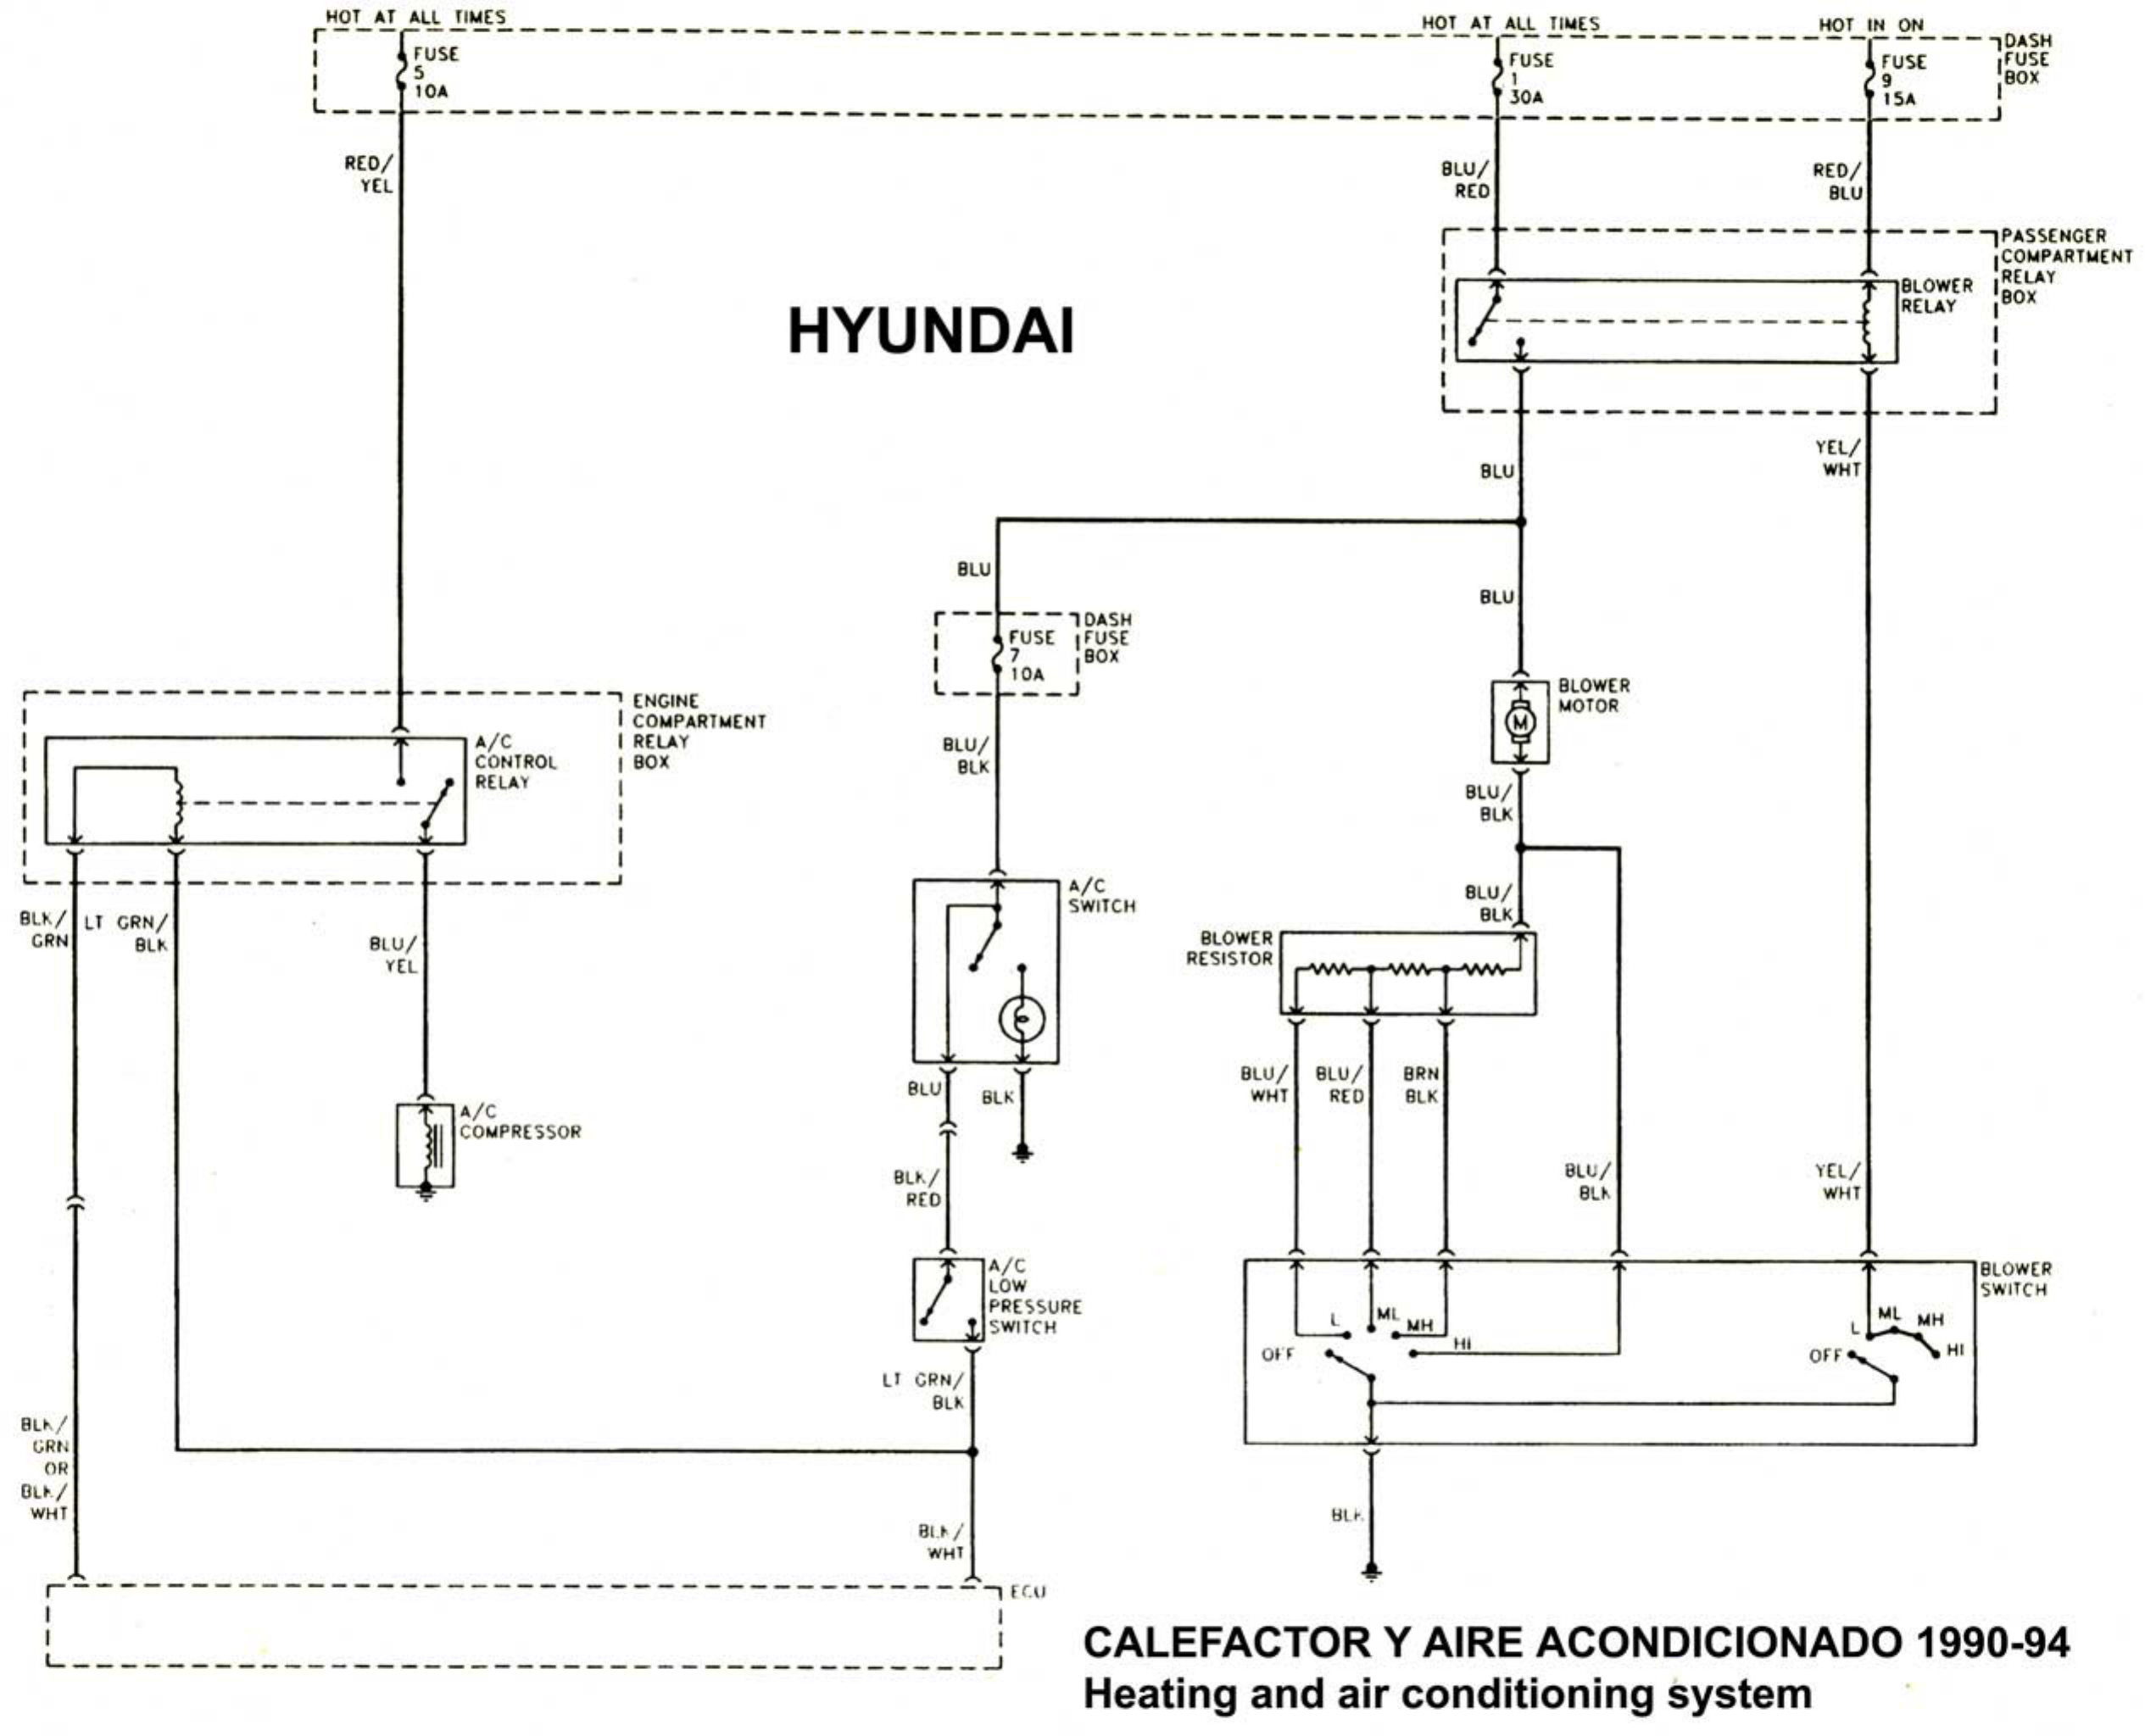 hyundai excel 1992 misc document wiring diagram spanish pdf 95 ford radio wiring diagram 95 hyundai excel wiring diagram